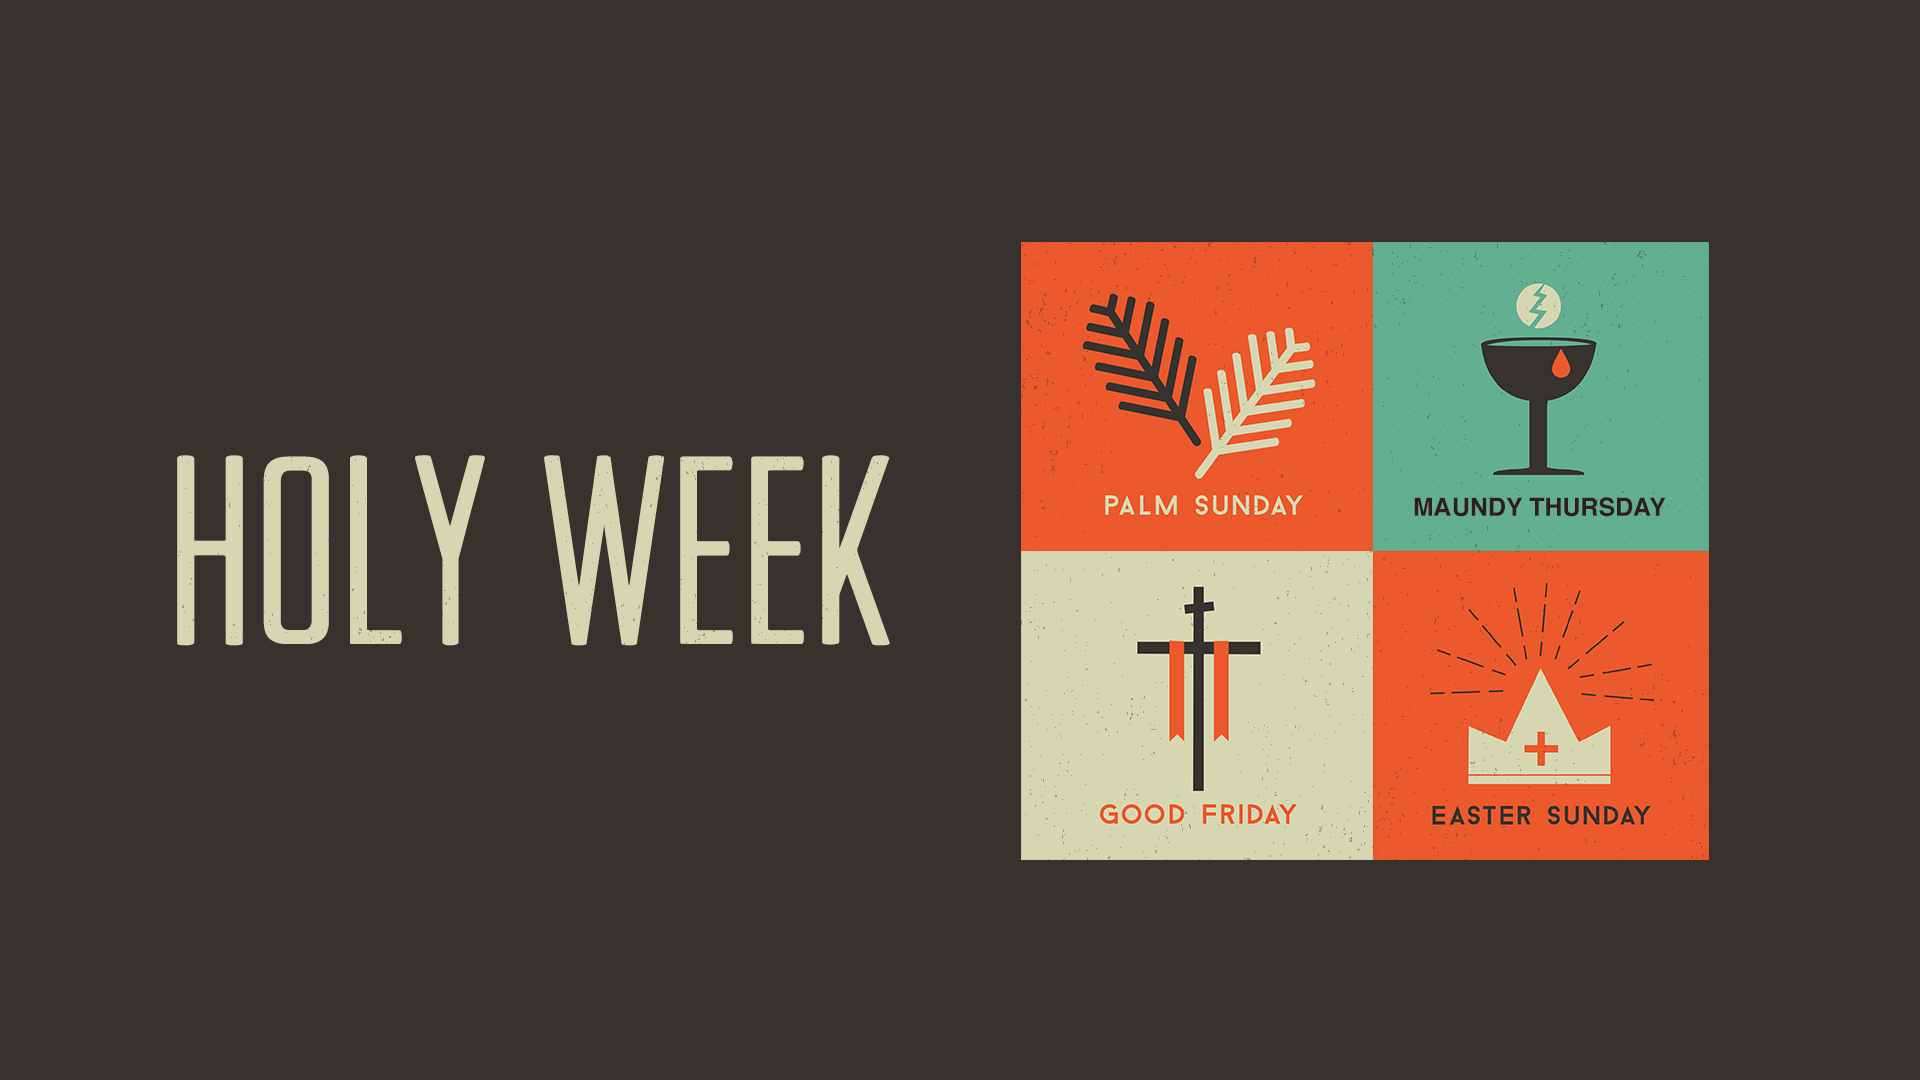 Holy week images hd